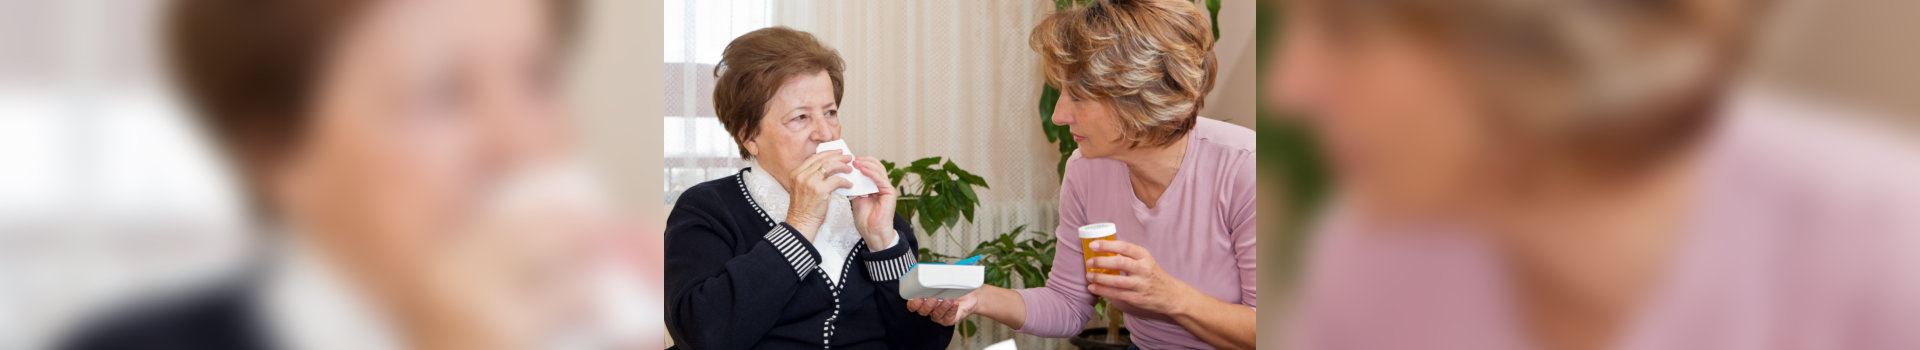 caregiver giving medication for her patient